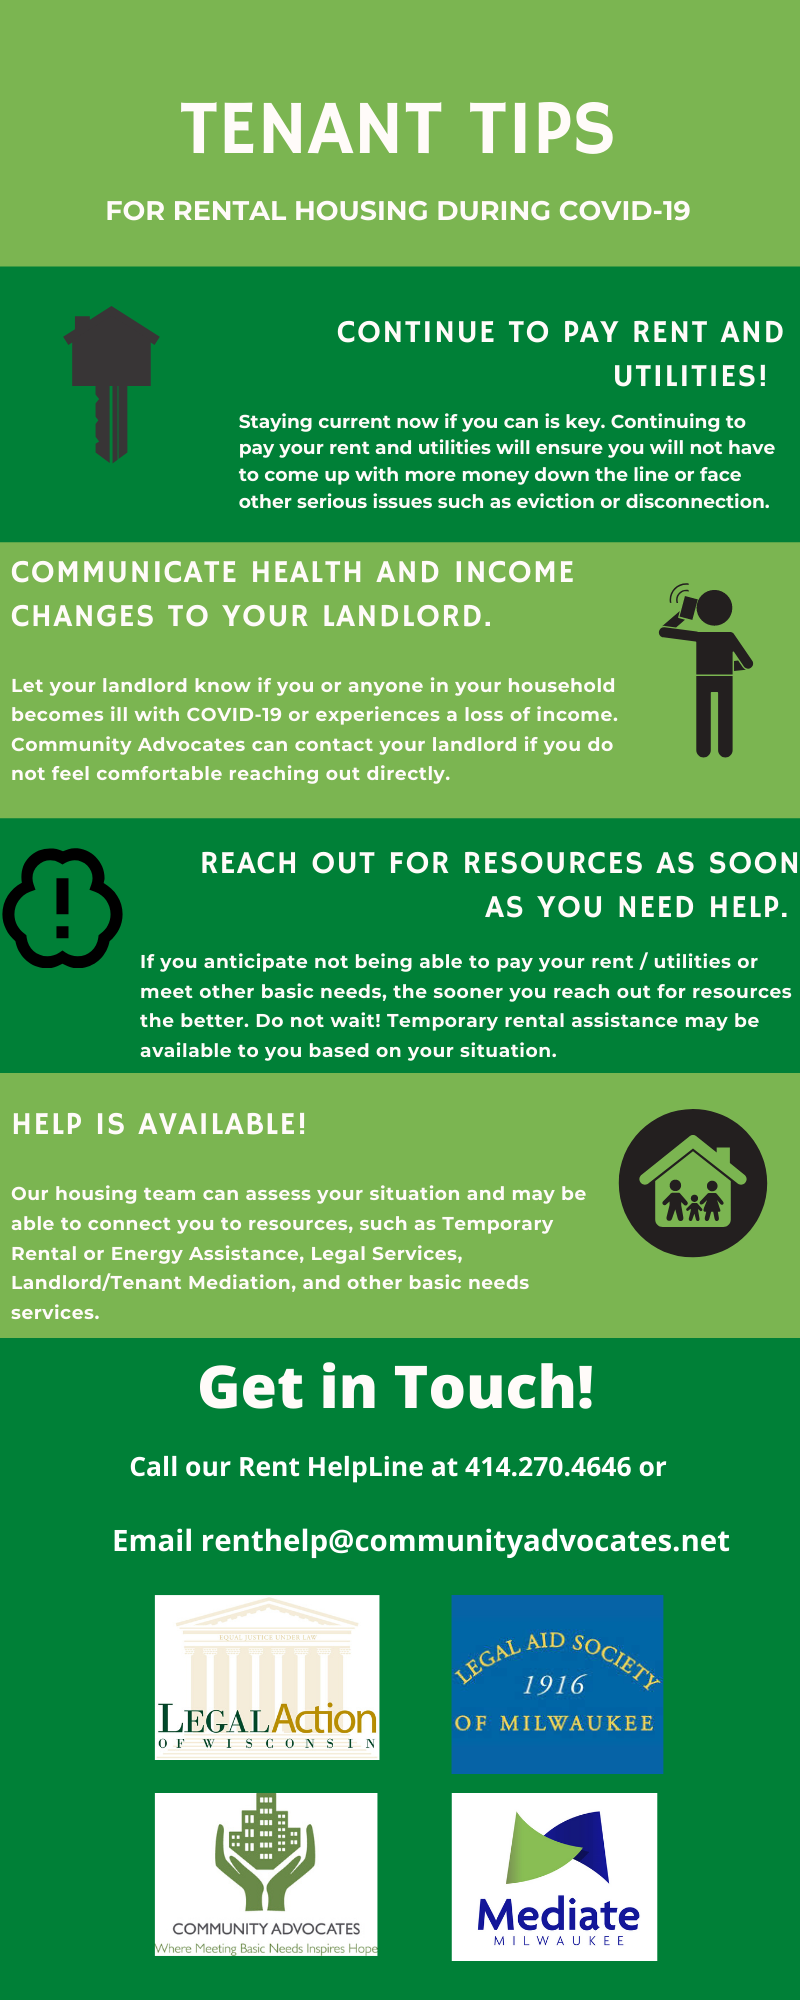 Tips for Milwaukee Tenants During the COVID-19 Public Health Emergency